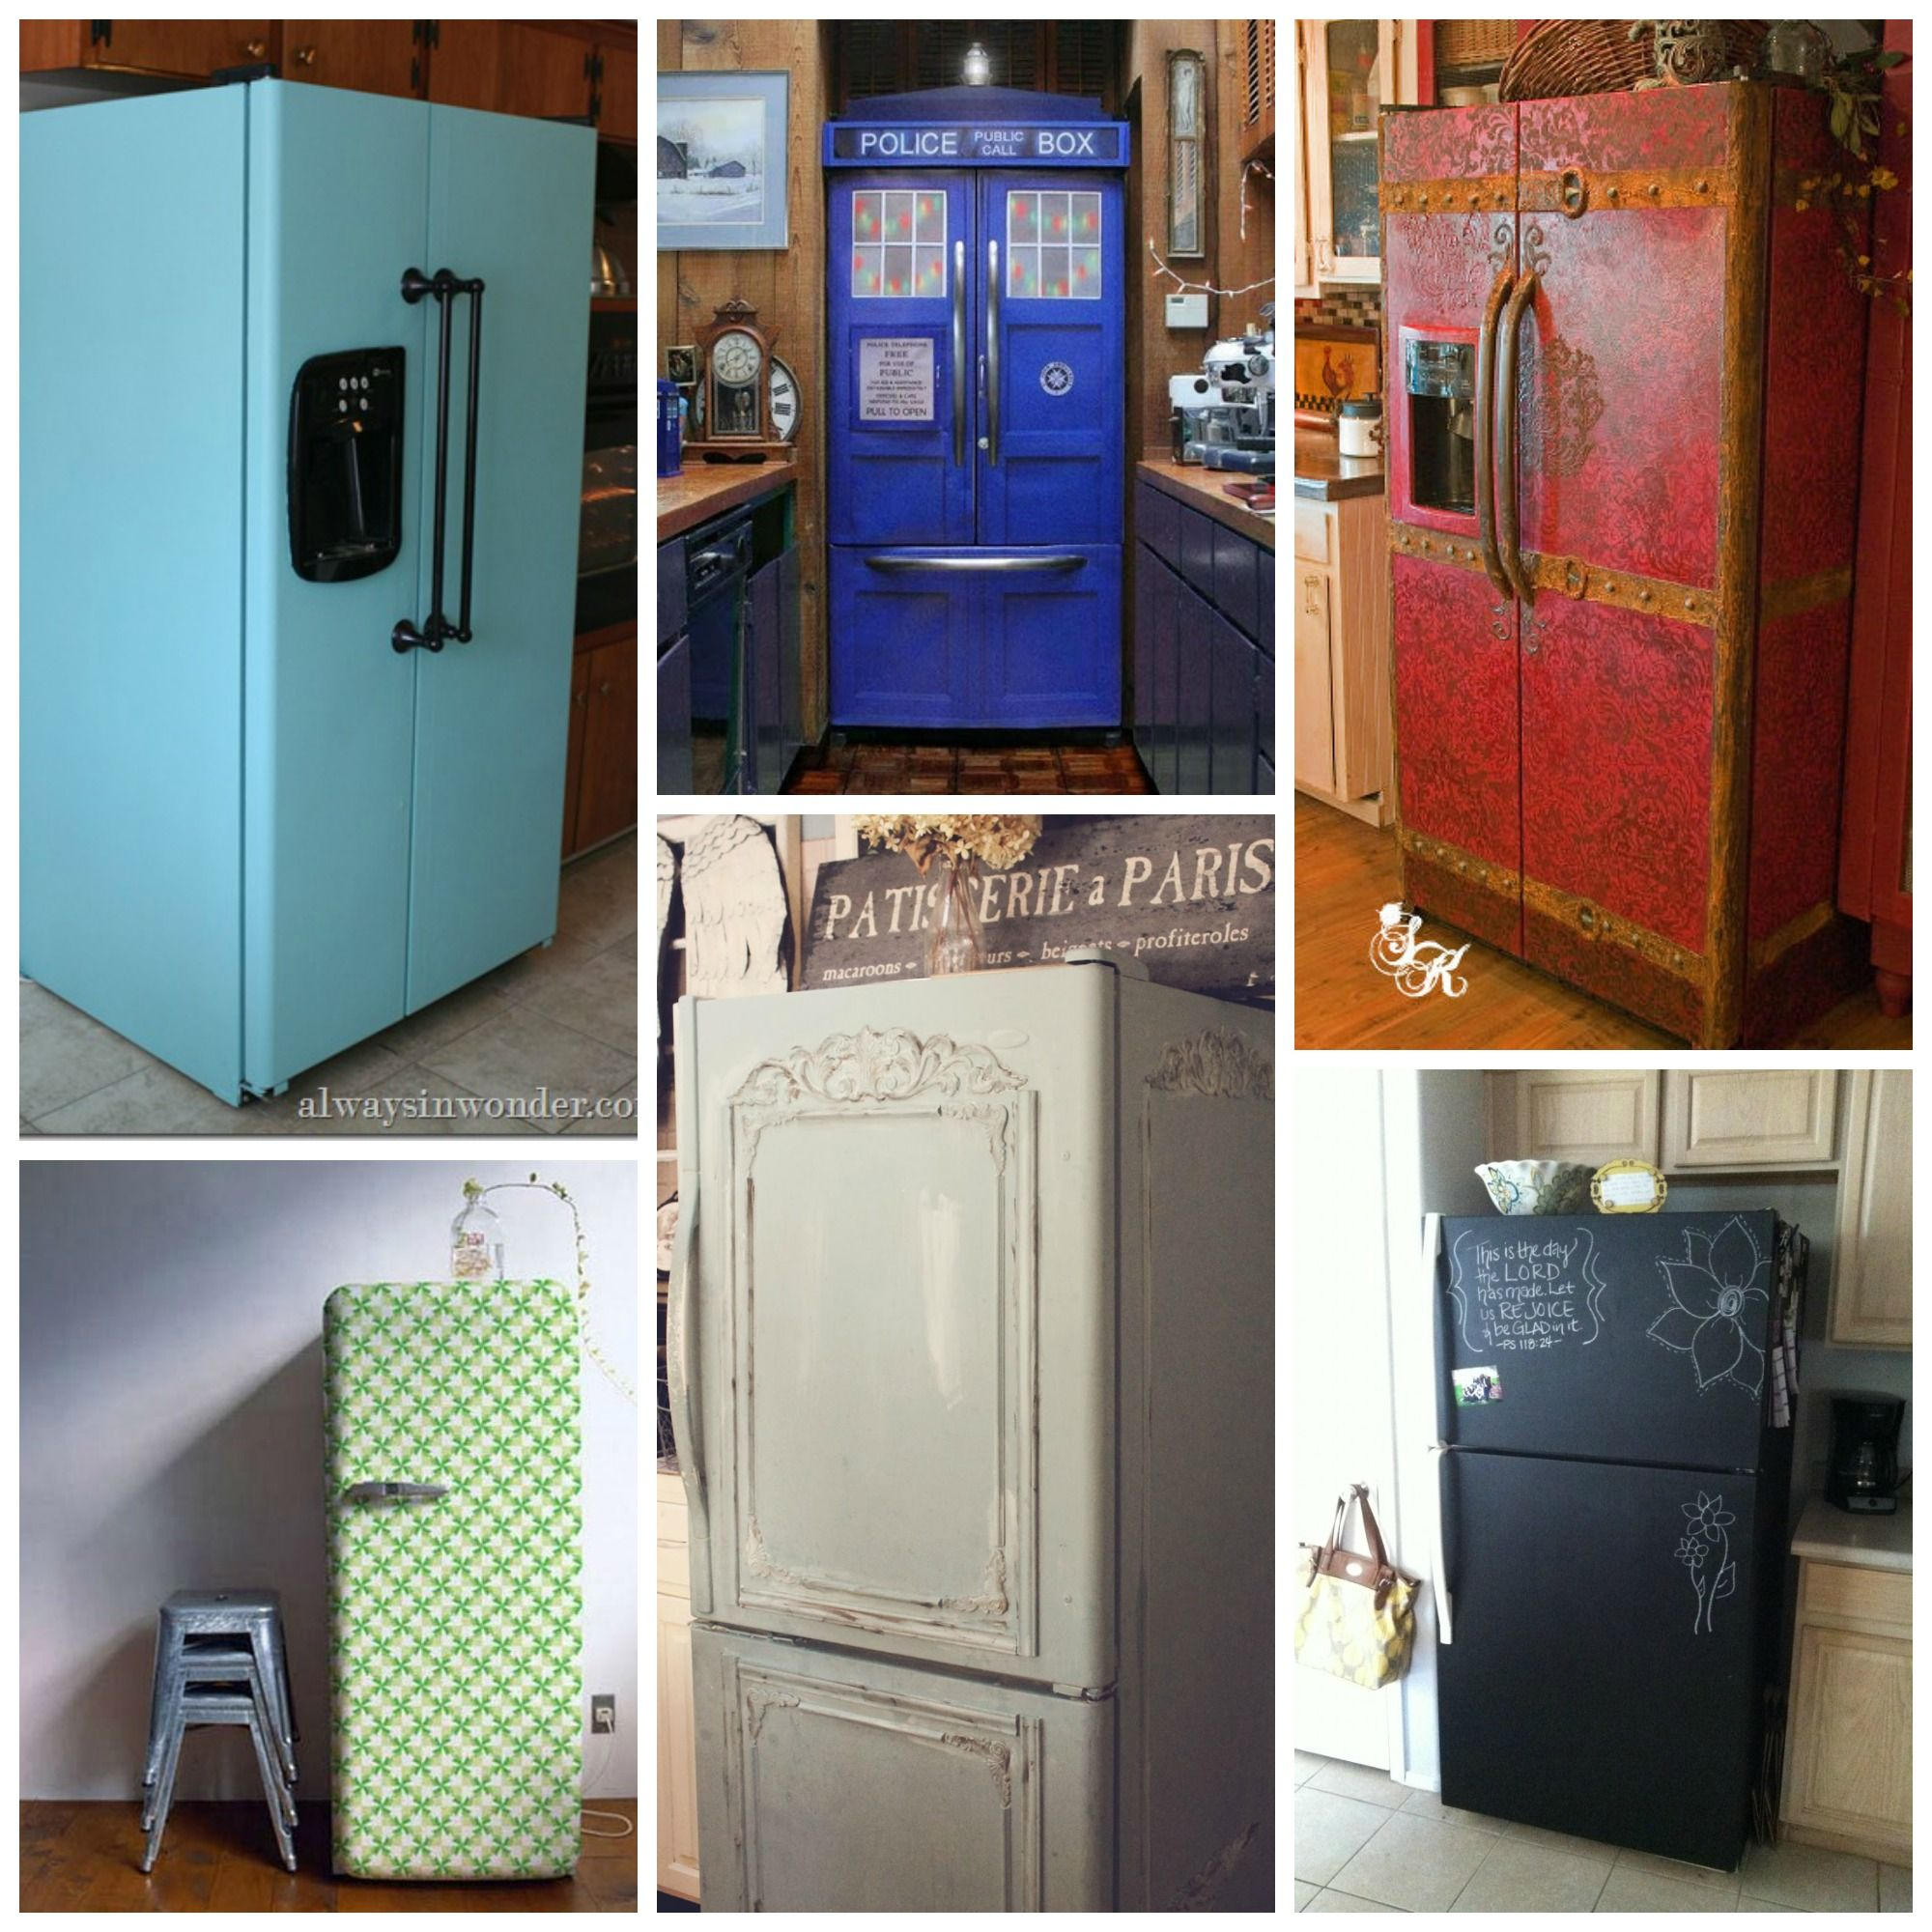 13 Fridge Makeovers That Will Blow Your Mind Diy Home